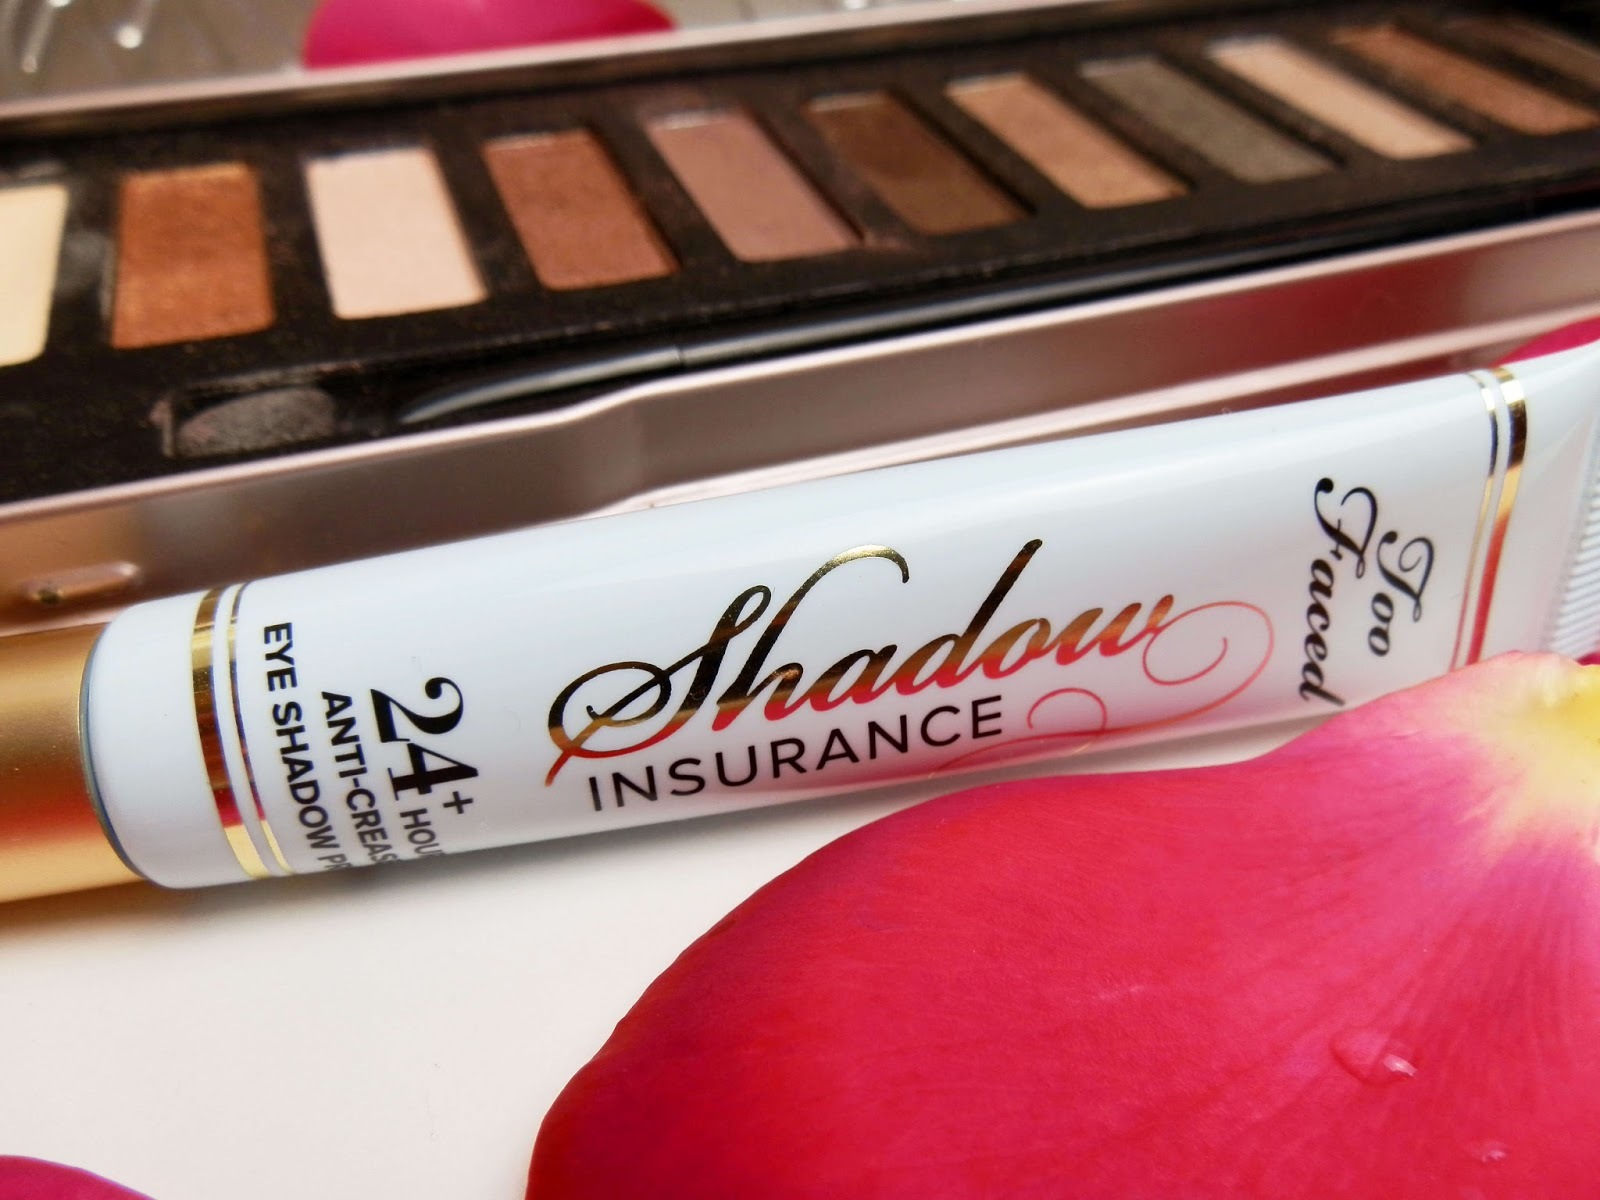 base shadow insurance too faced